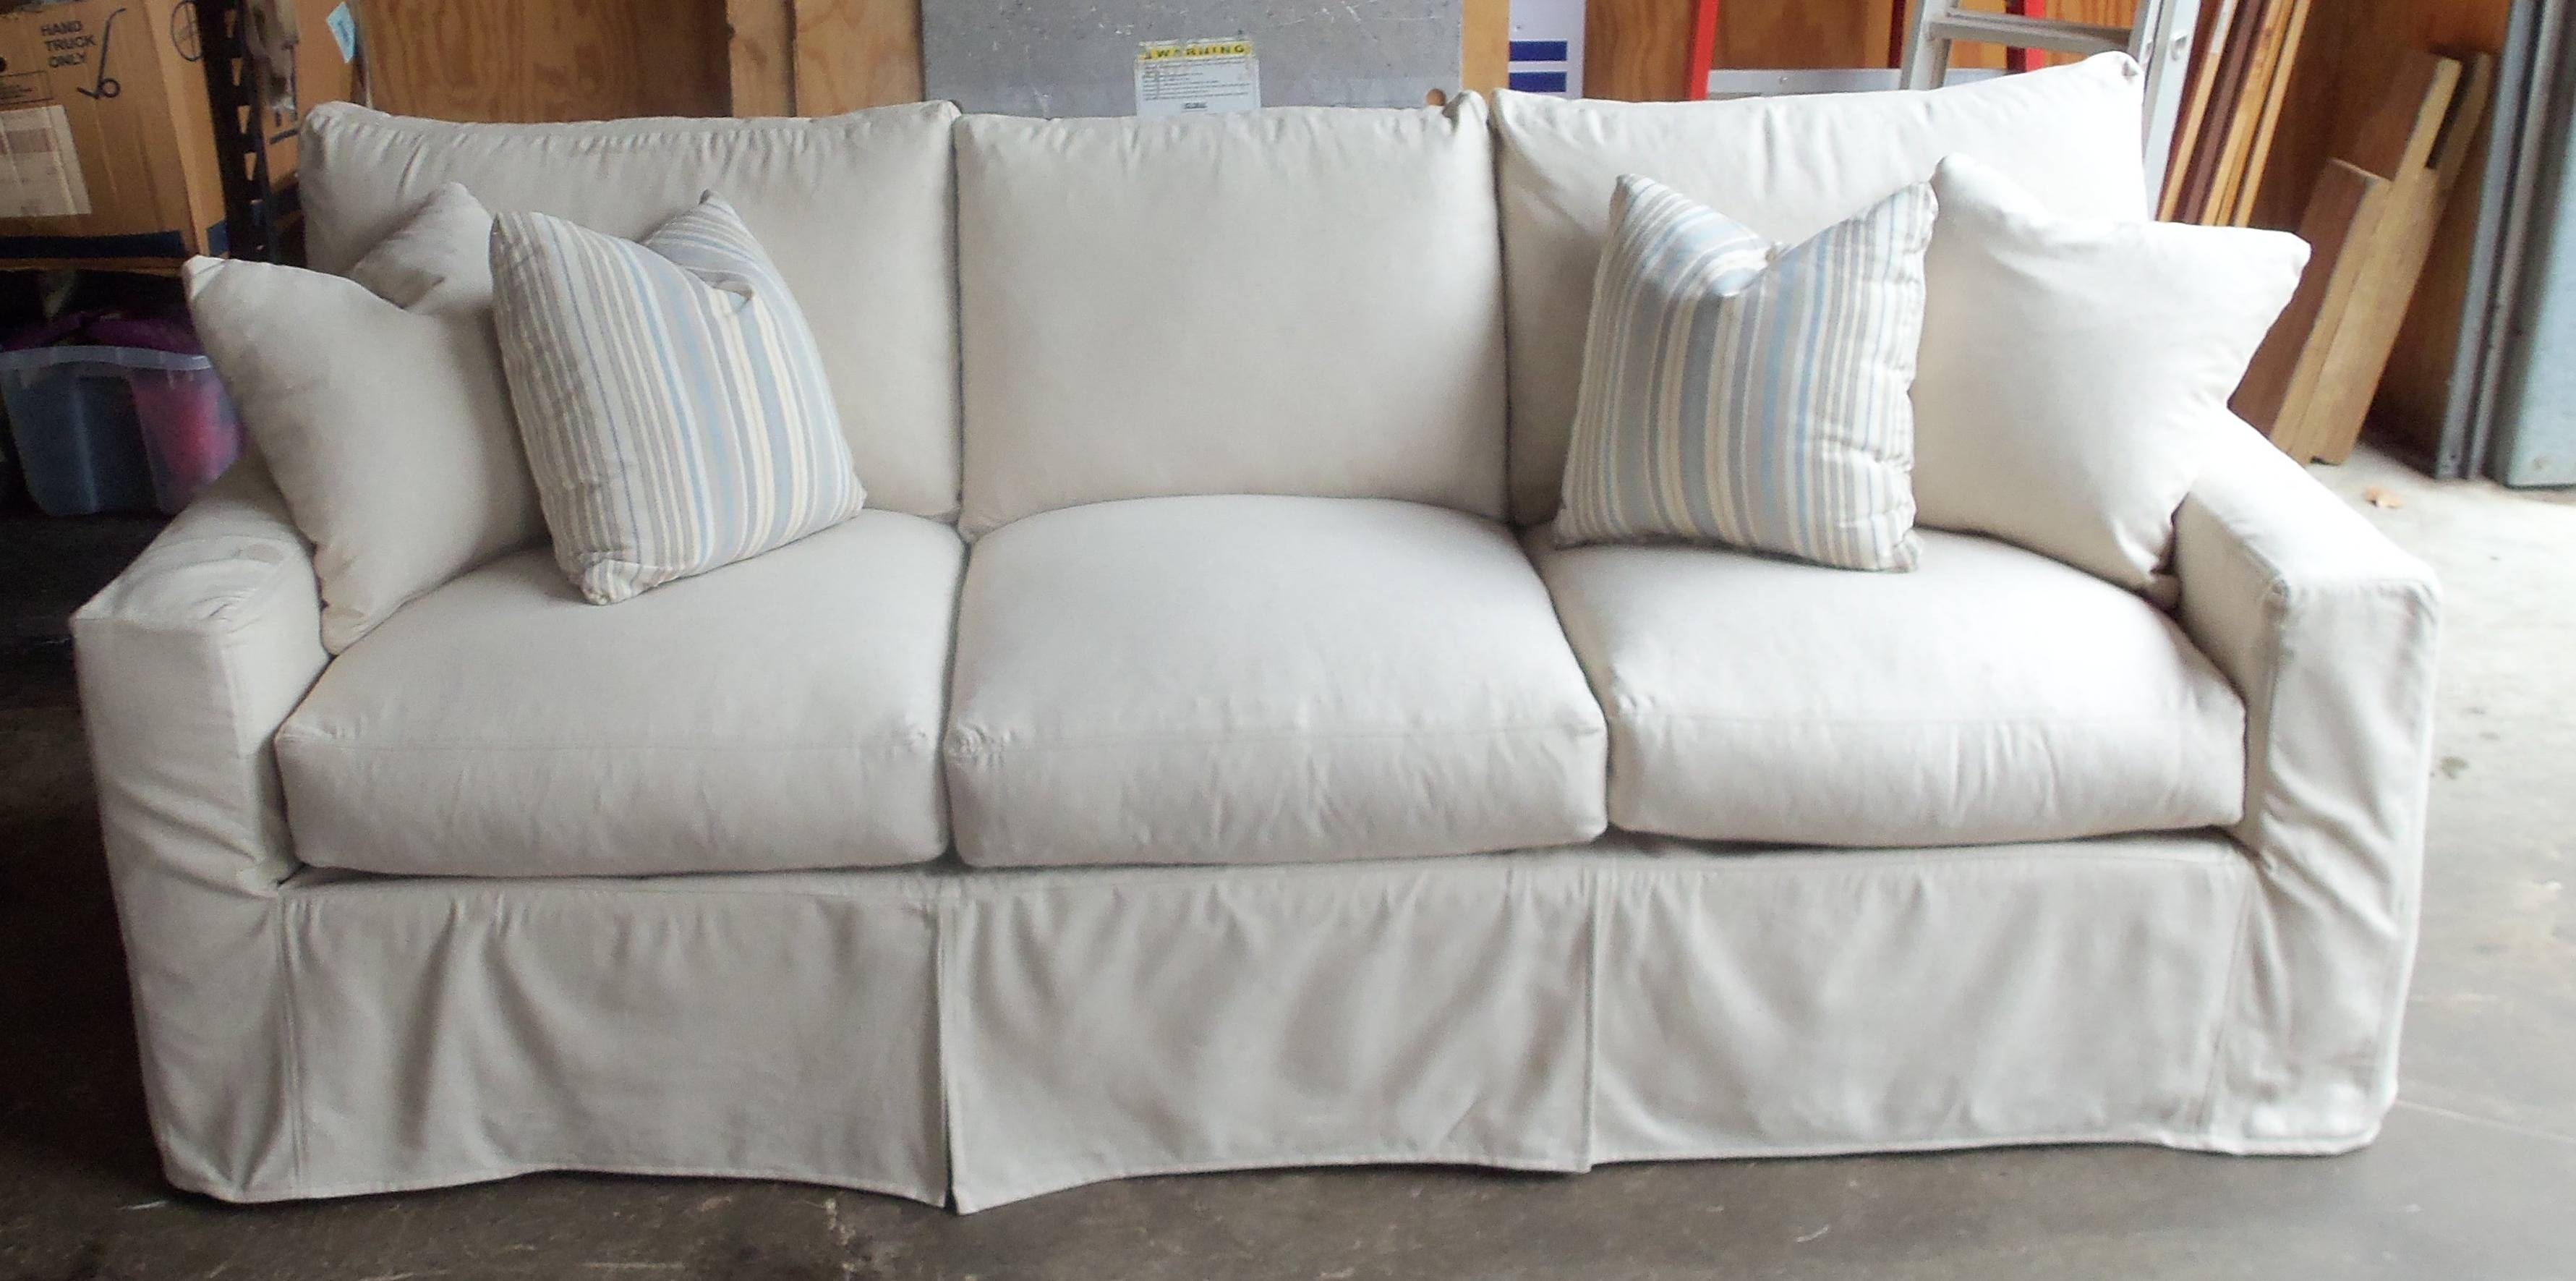 Furniture: Have Fun Changing The Look And Feel With Sofa regarding Sofas Cover For Sectional Sofas (Image 4 of 15)